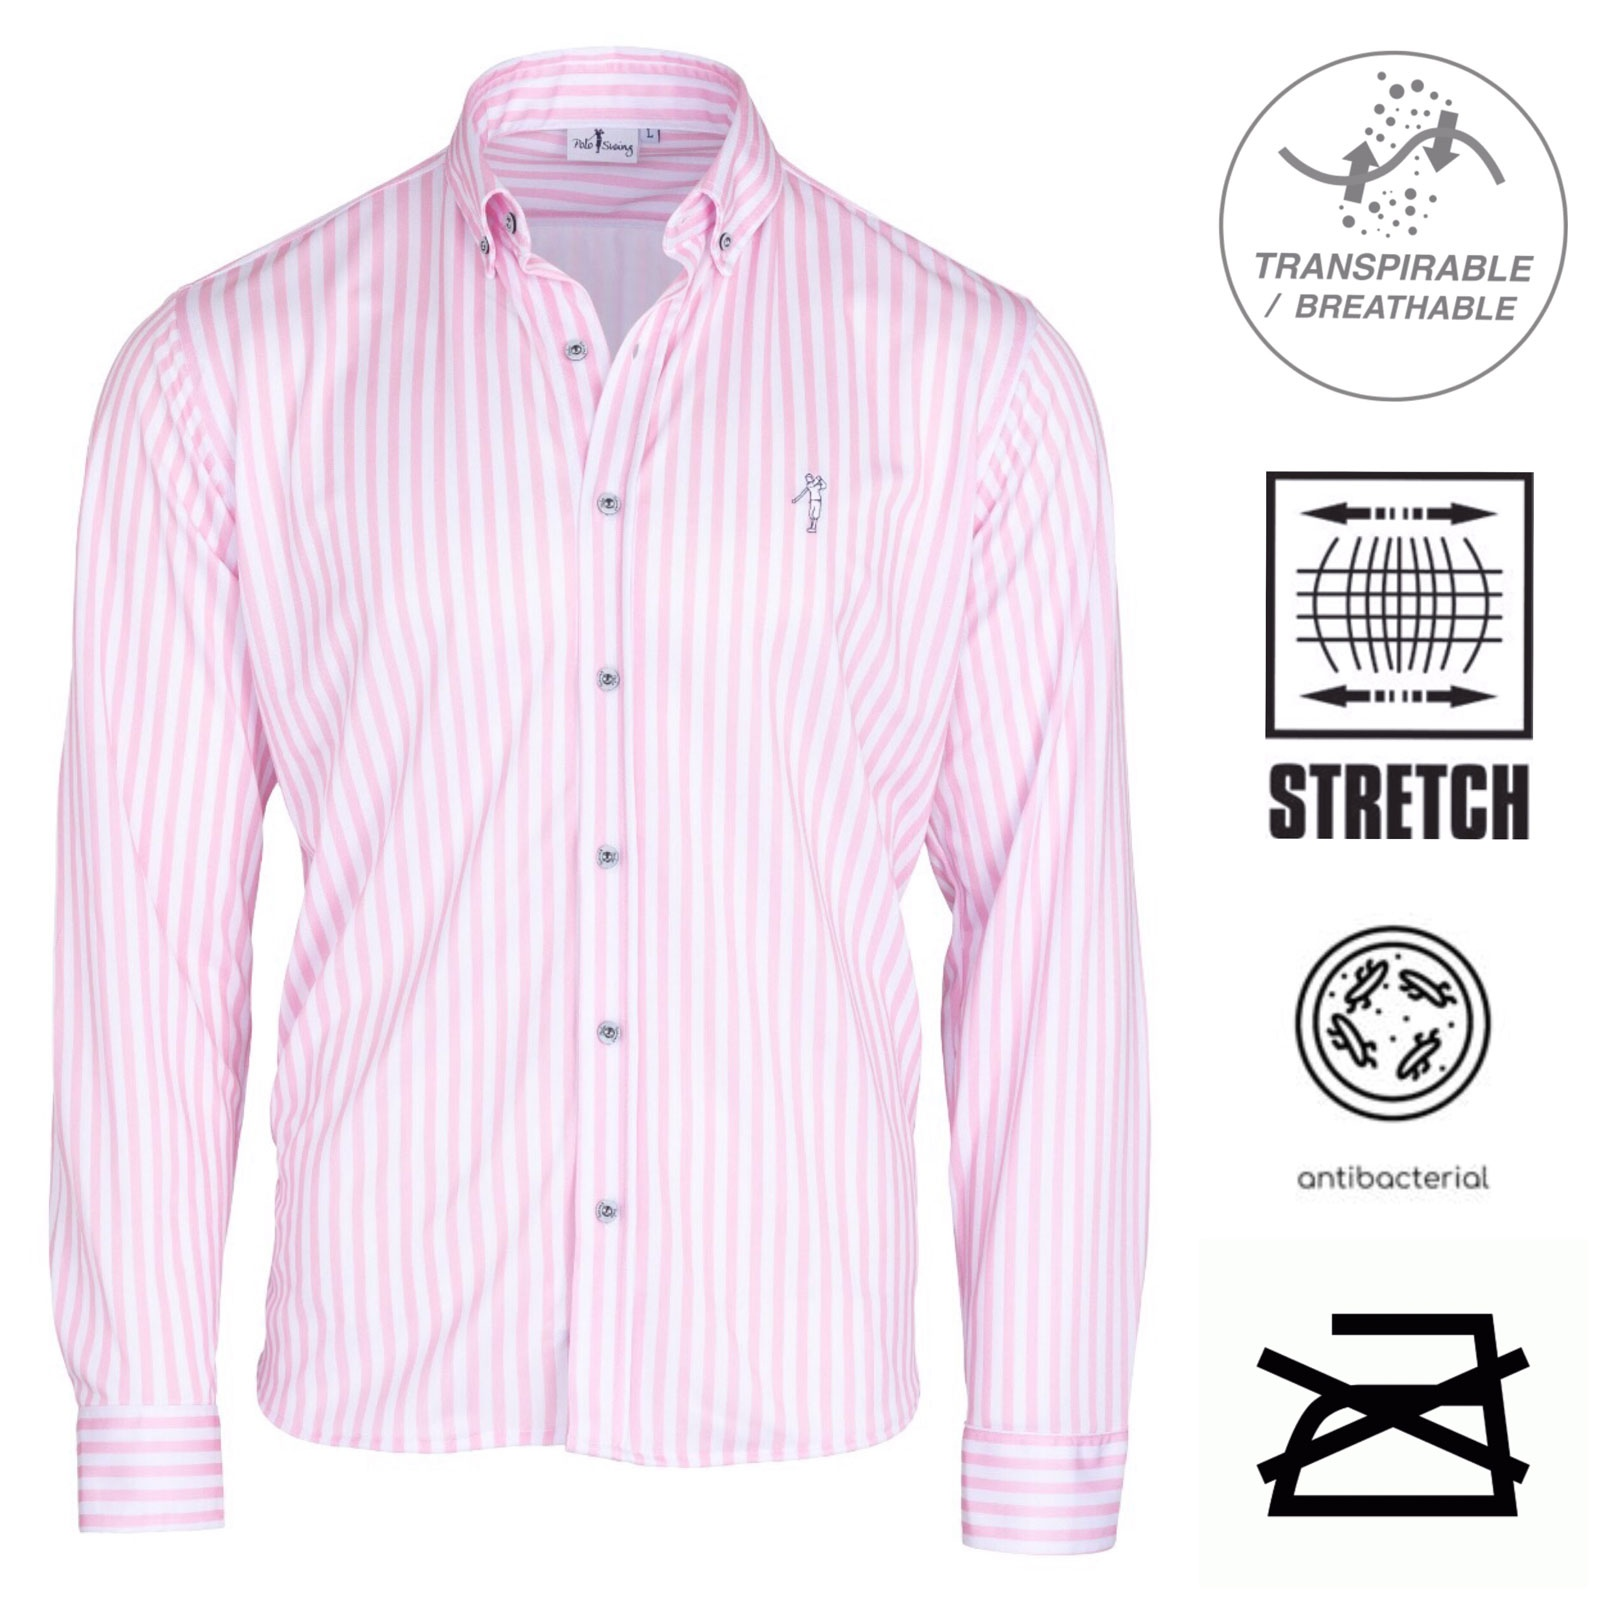 Camisa tecnica dry swing bioactive